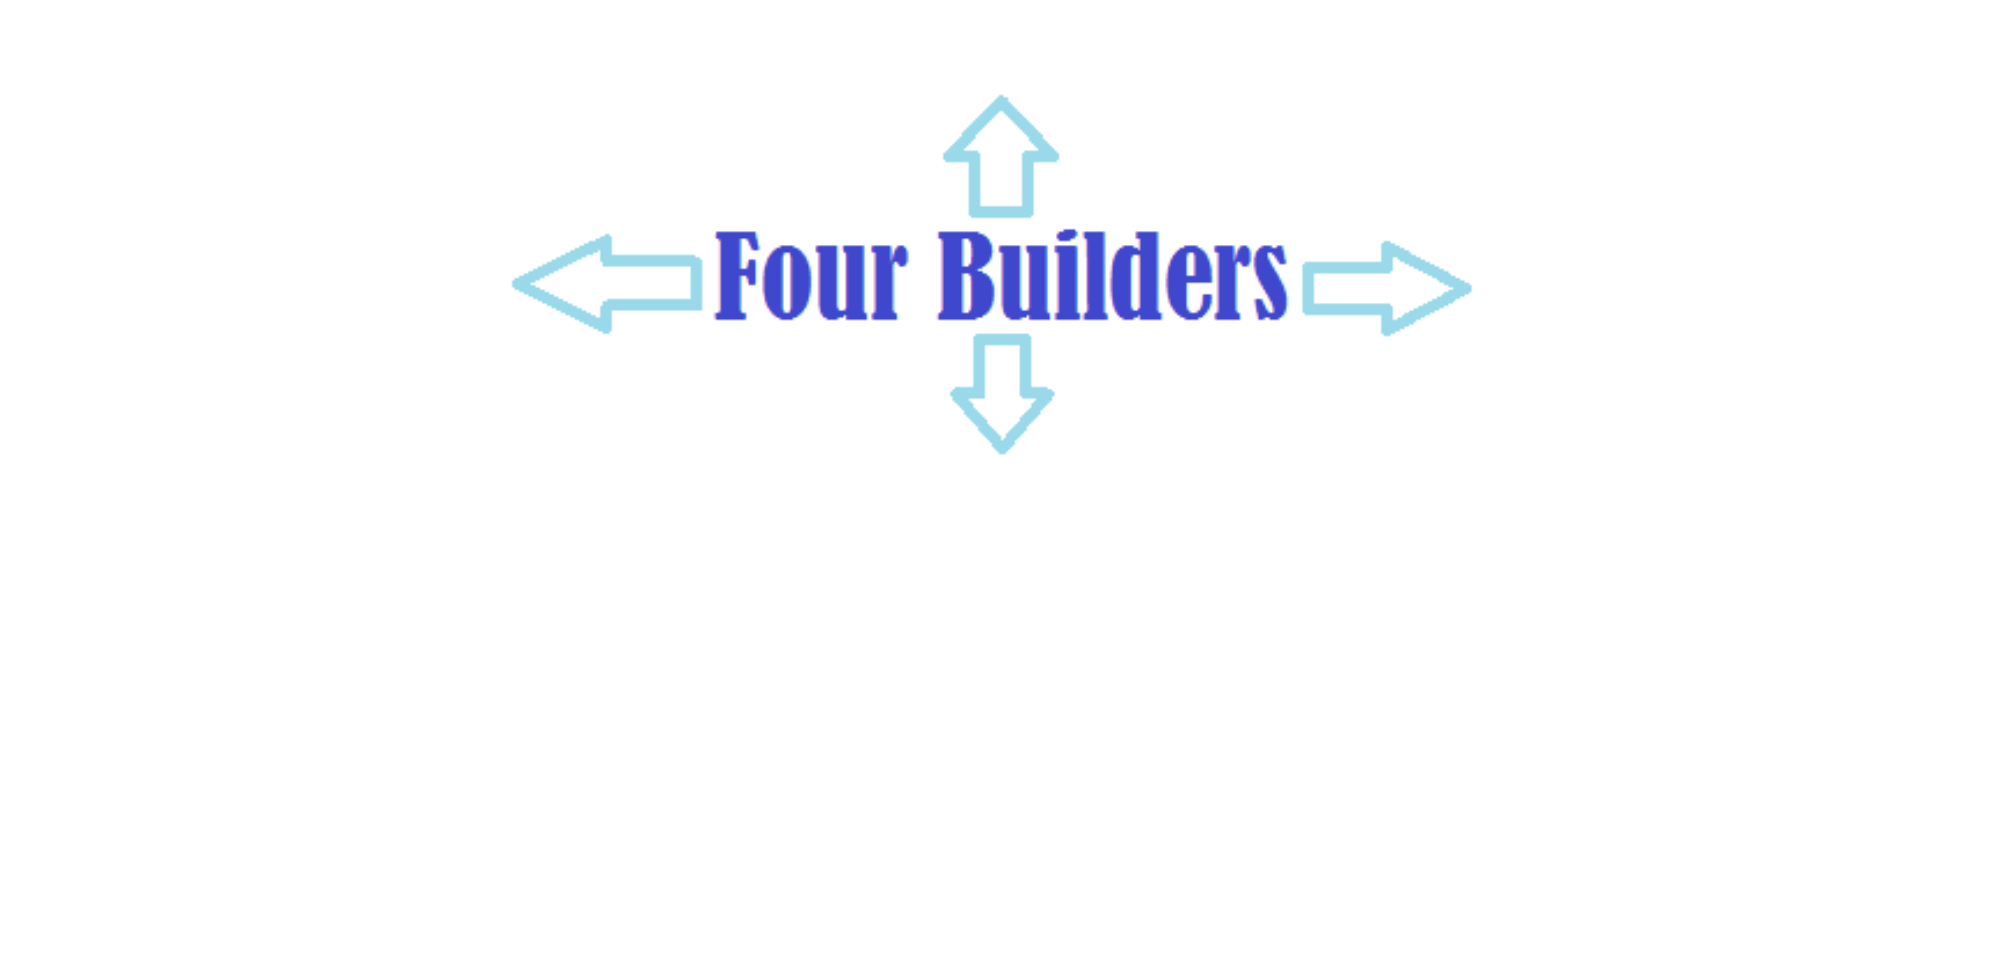 Four Builders